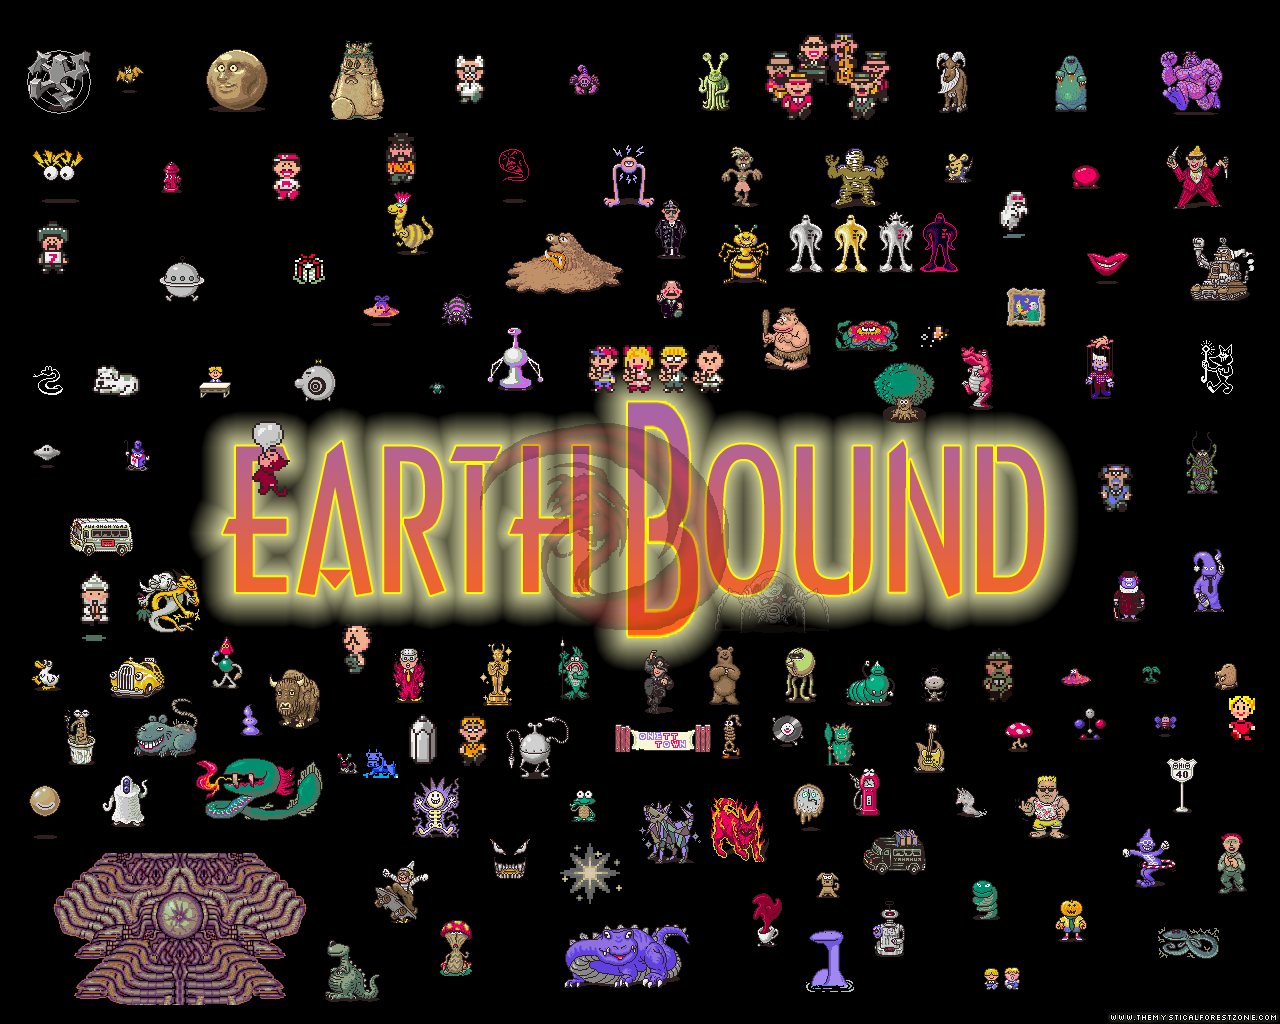 EarthboundMother images Earthbound Wallpapaer wallpaper photos 1280x1024